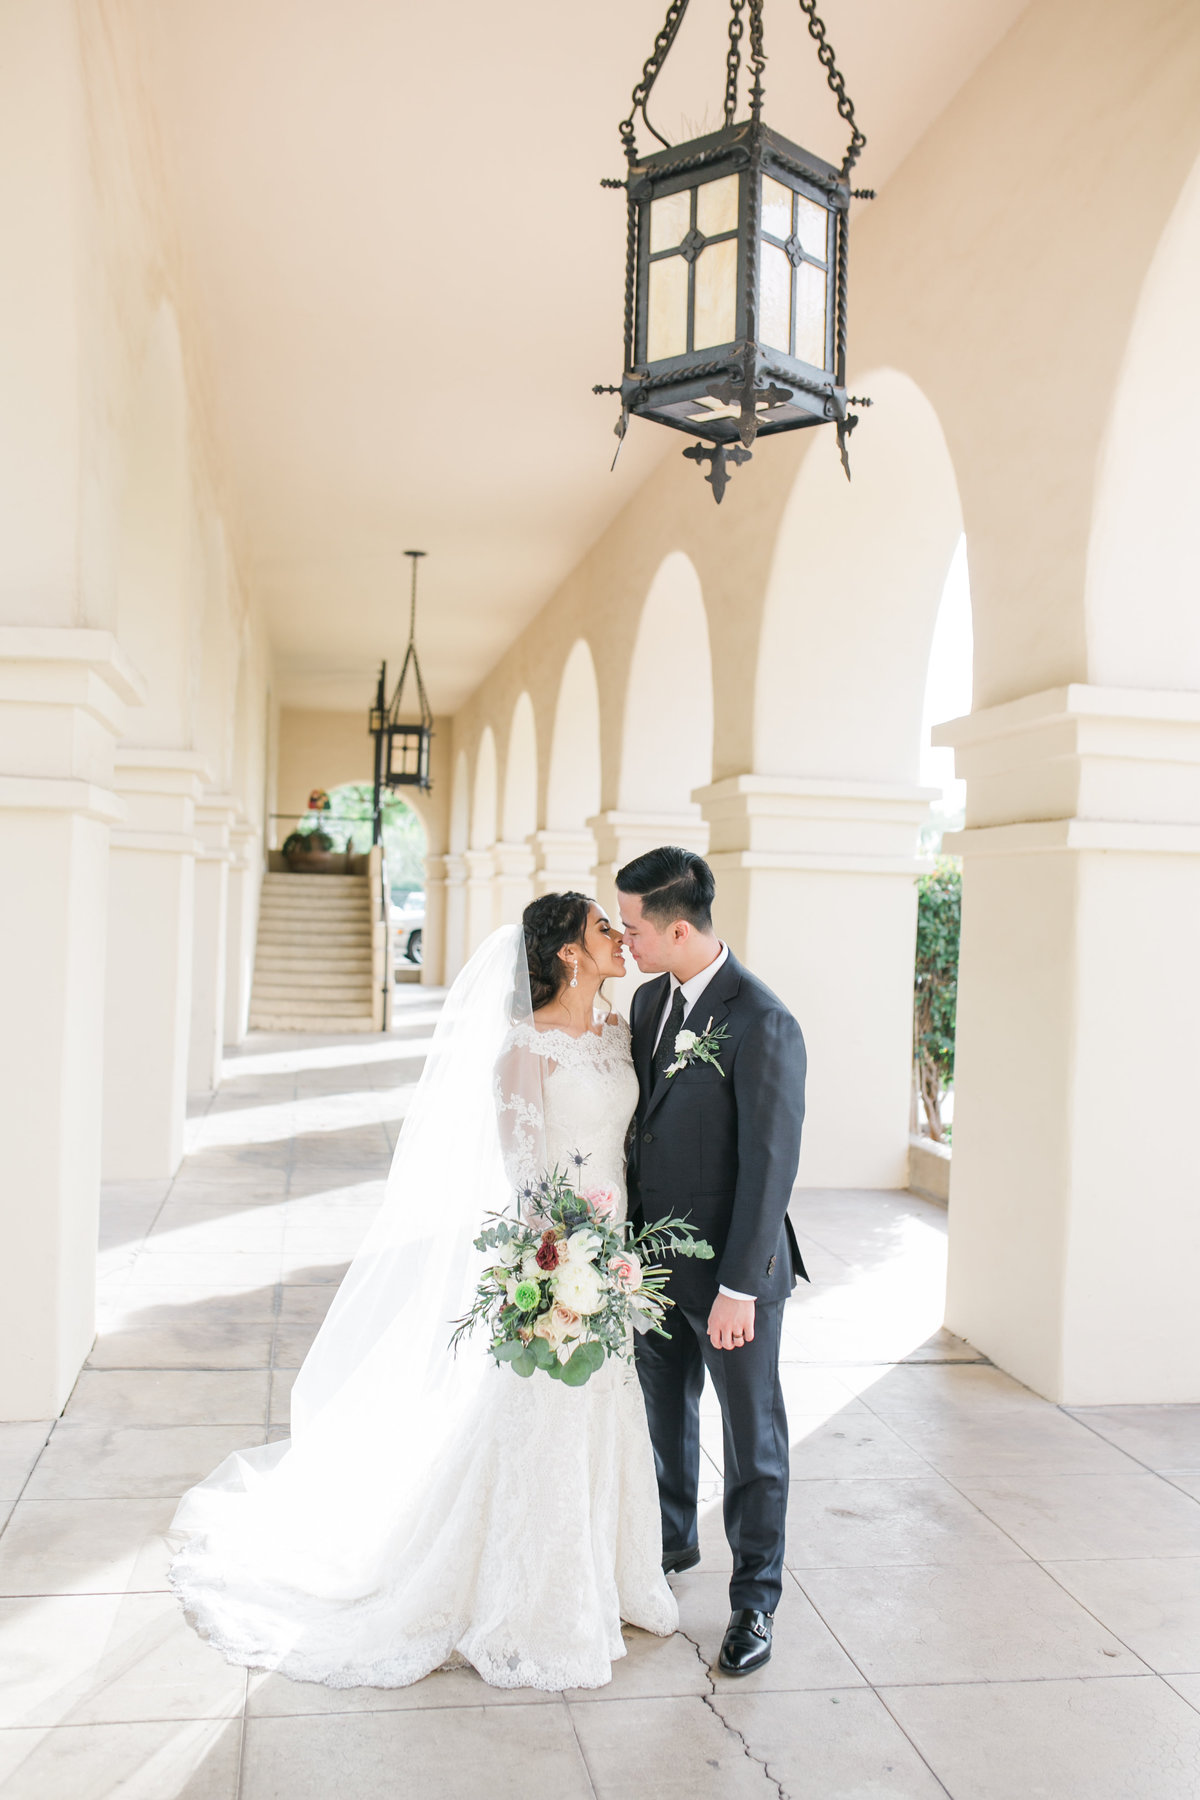 Karlie Colleen Photography- Viet & Ari Full Wedding -662